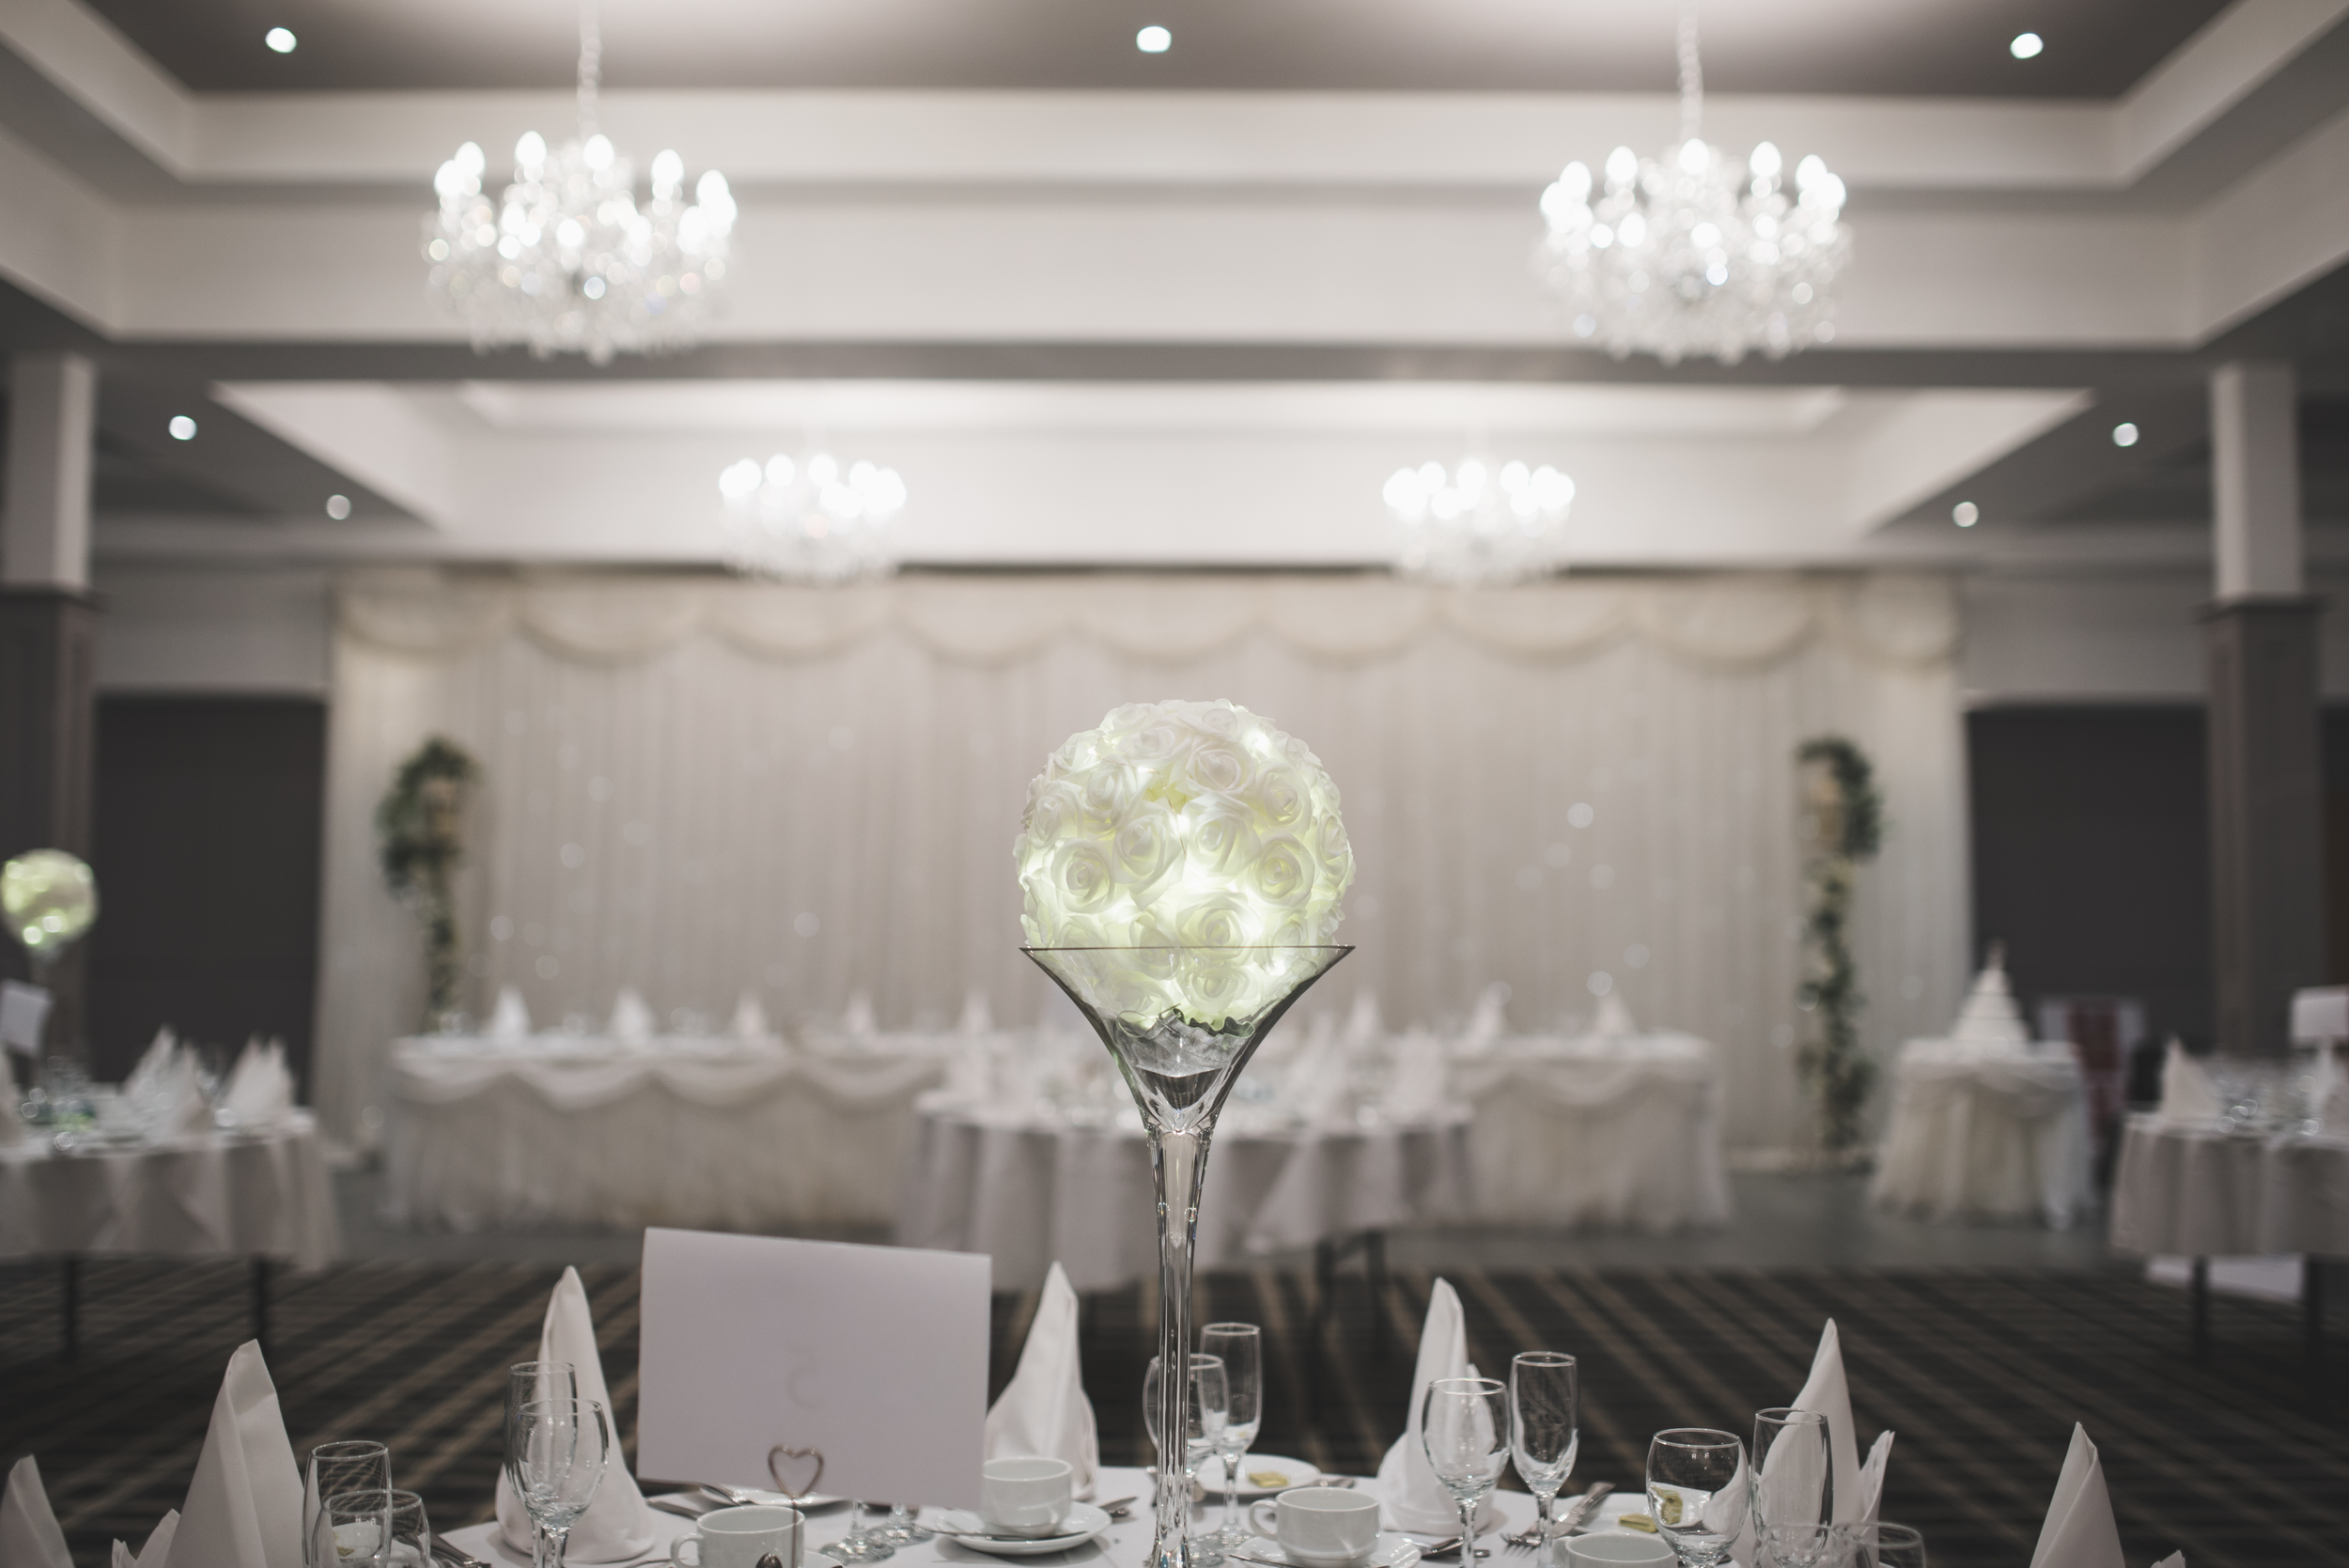 As is usual the Loughshore Suite looked amazing thanks too Over The Moon Wedding & Event Stylists.